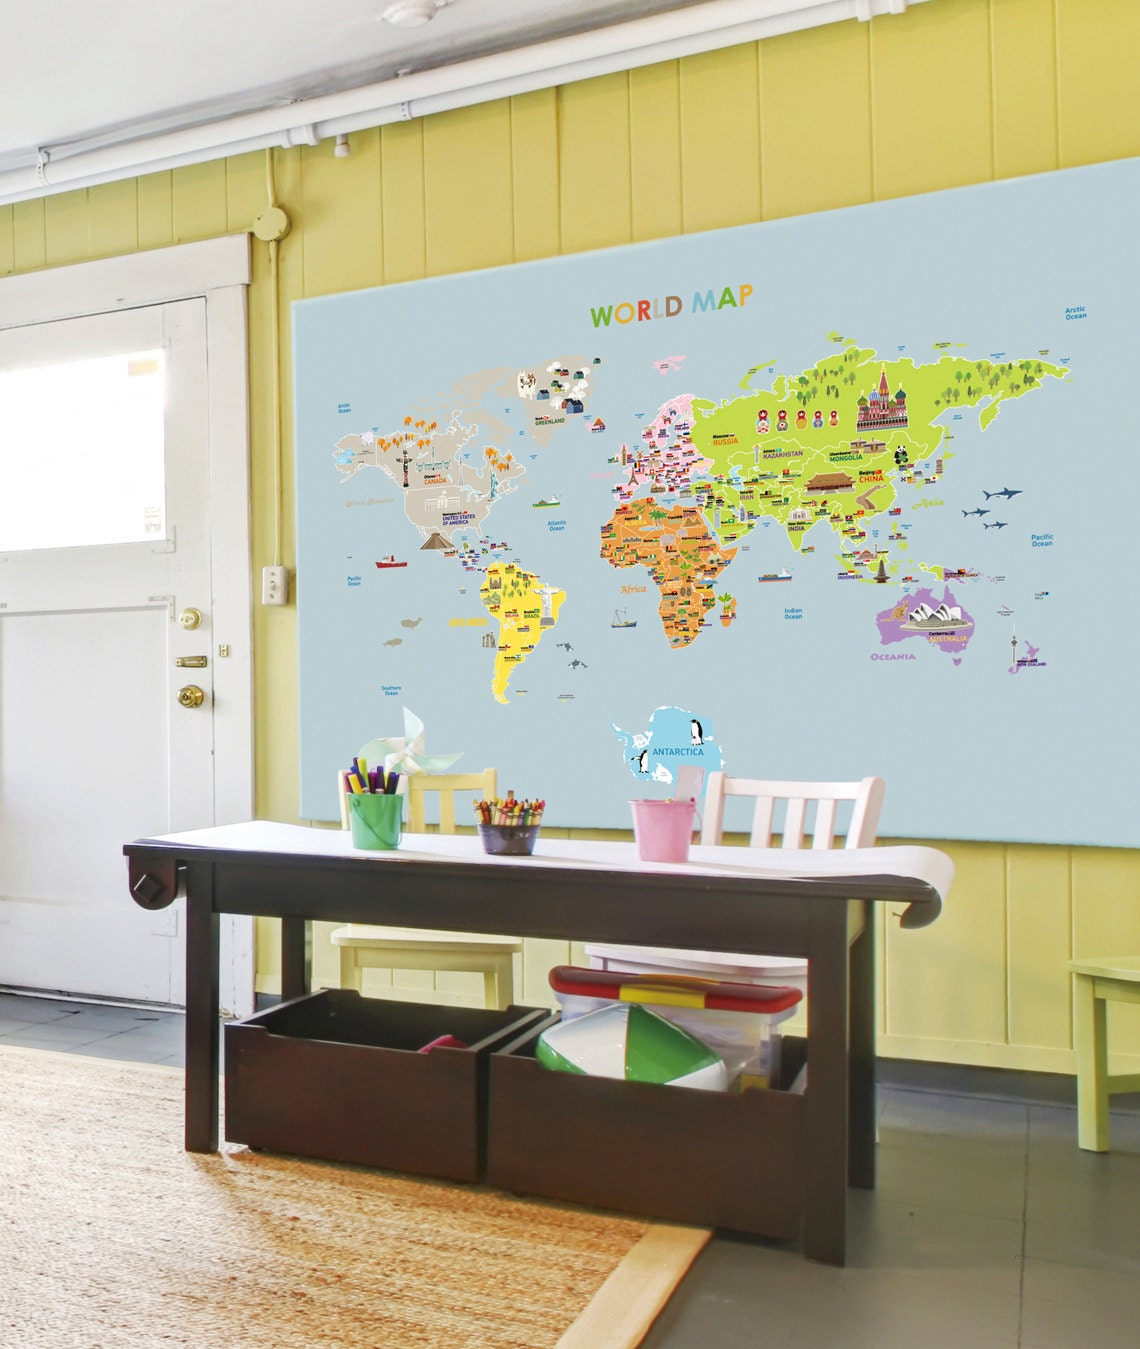 World map removable nursery wall art decor mural decal sticker zoom gumiabroncs Gallery